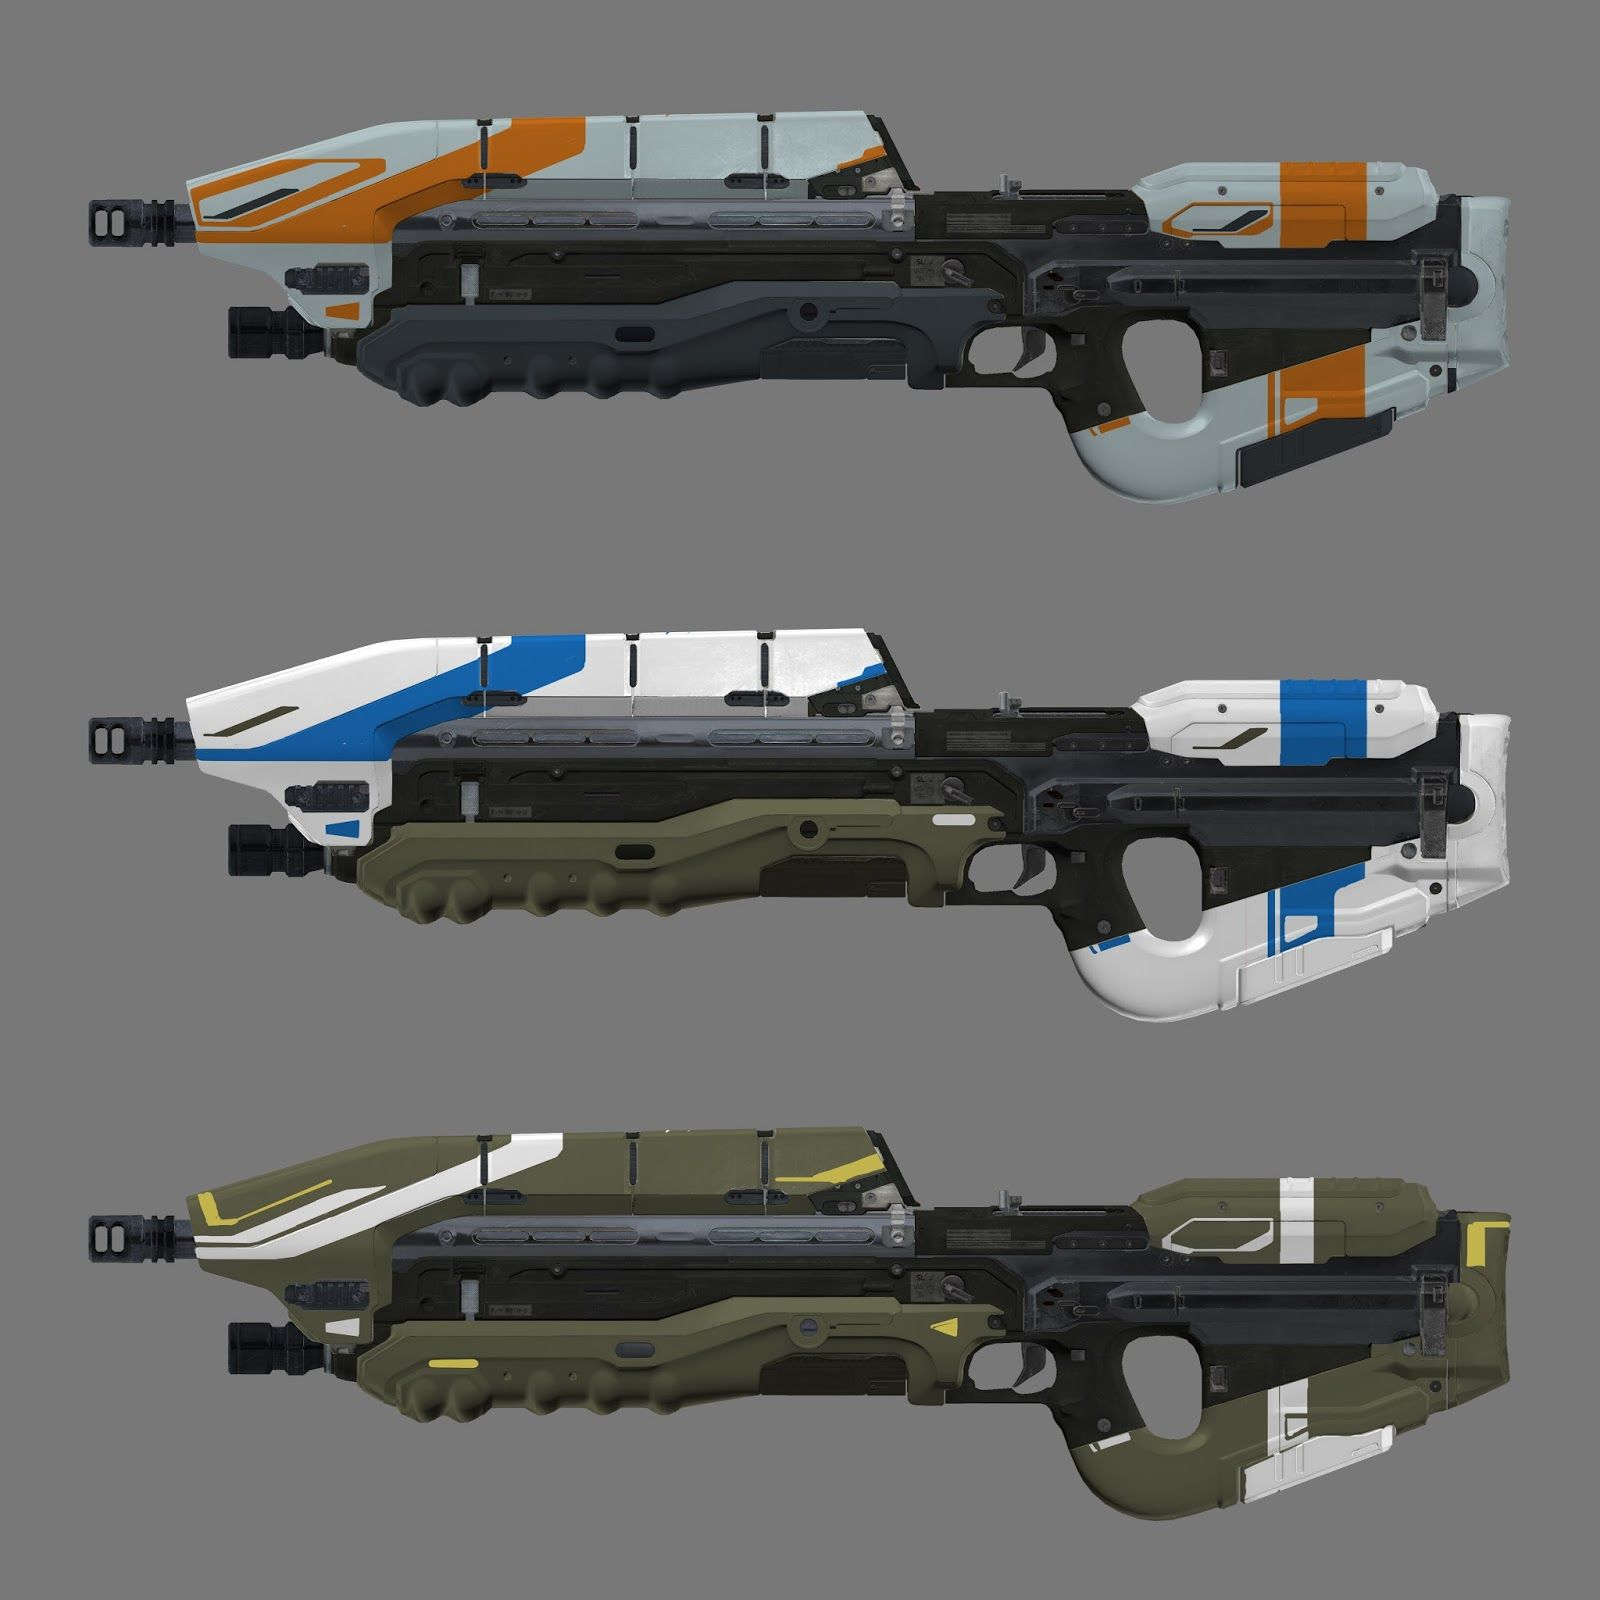 Halo Reach Covenant Weapons